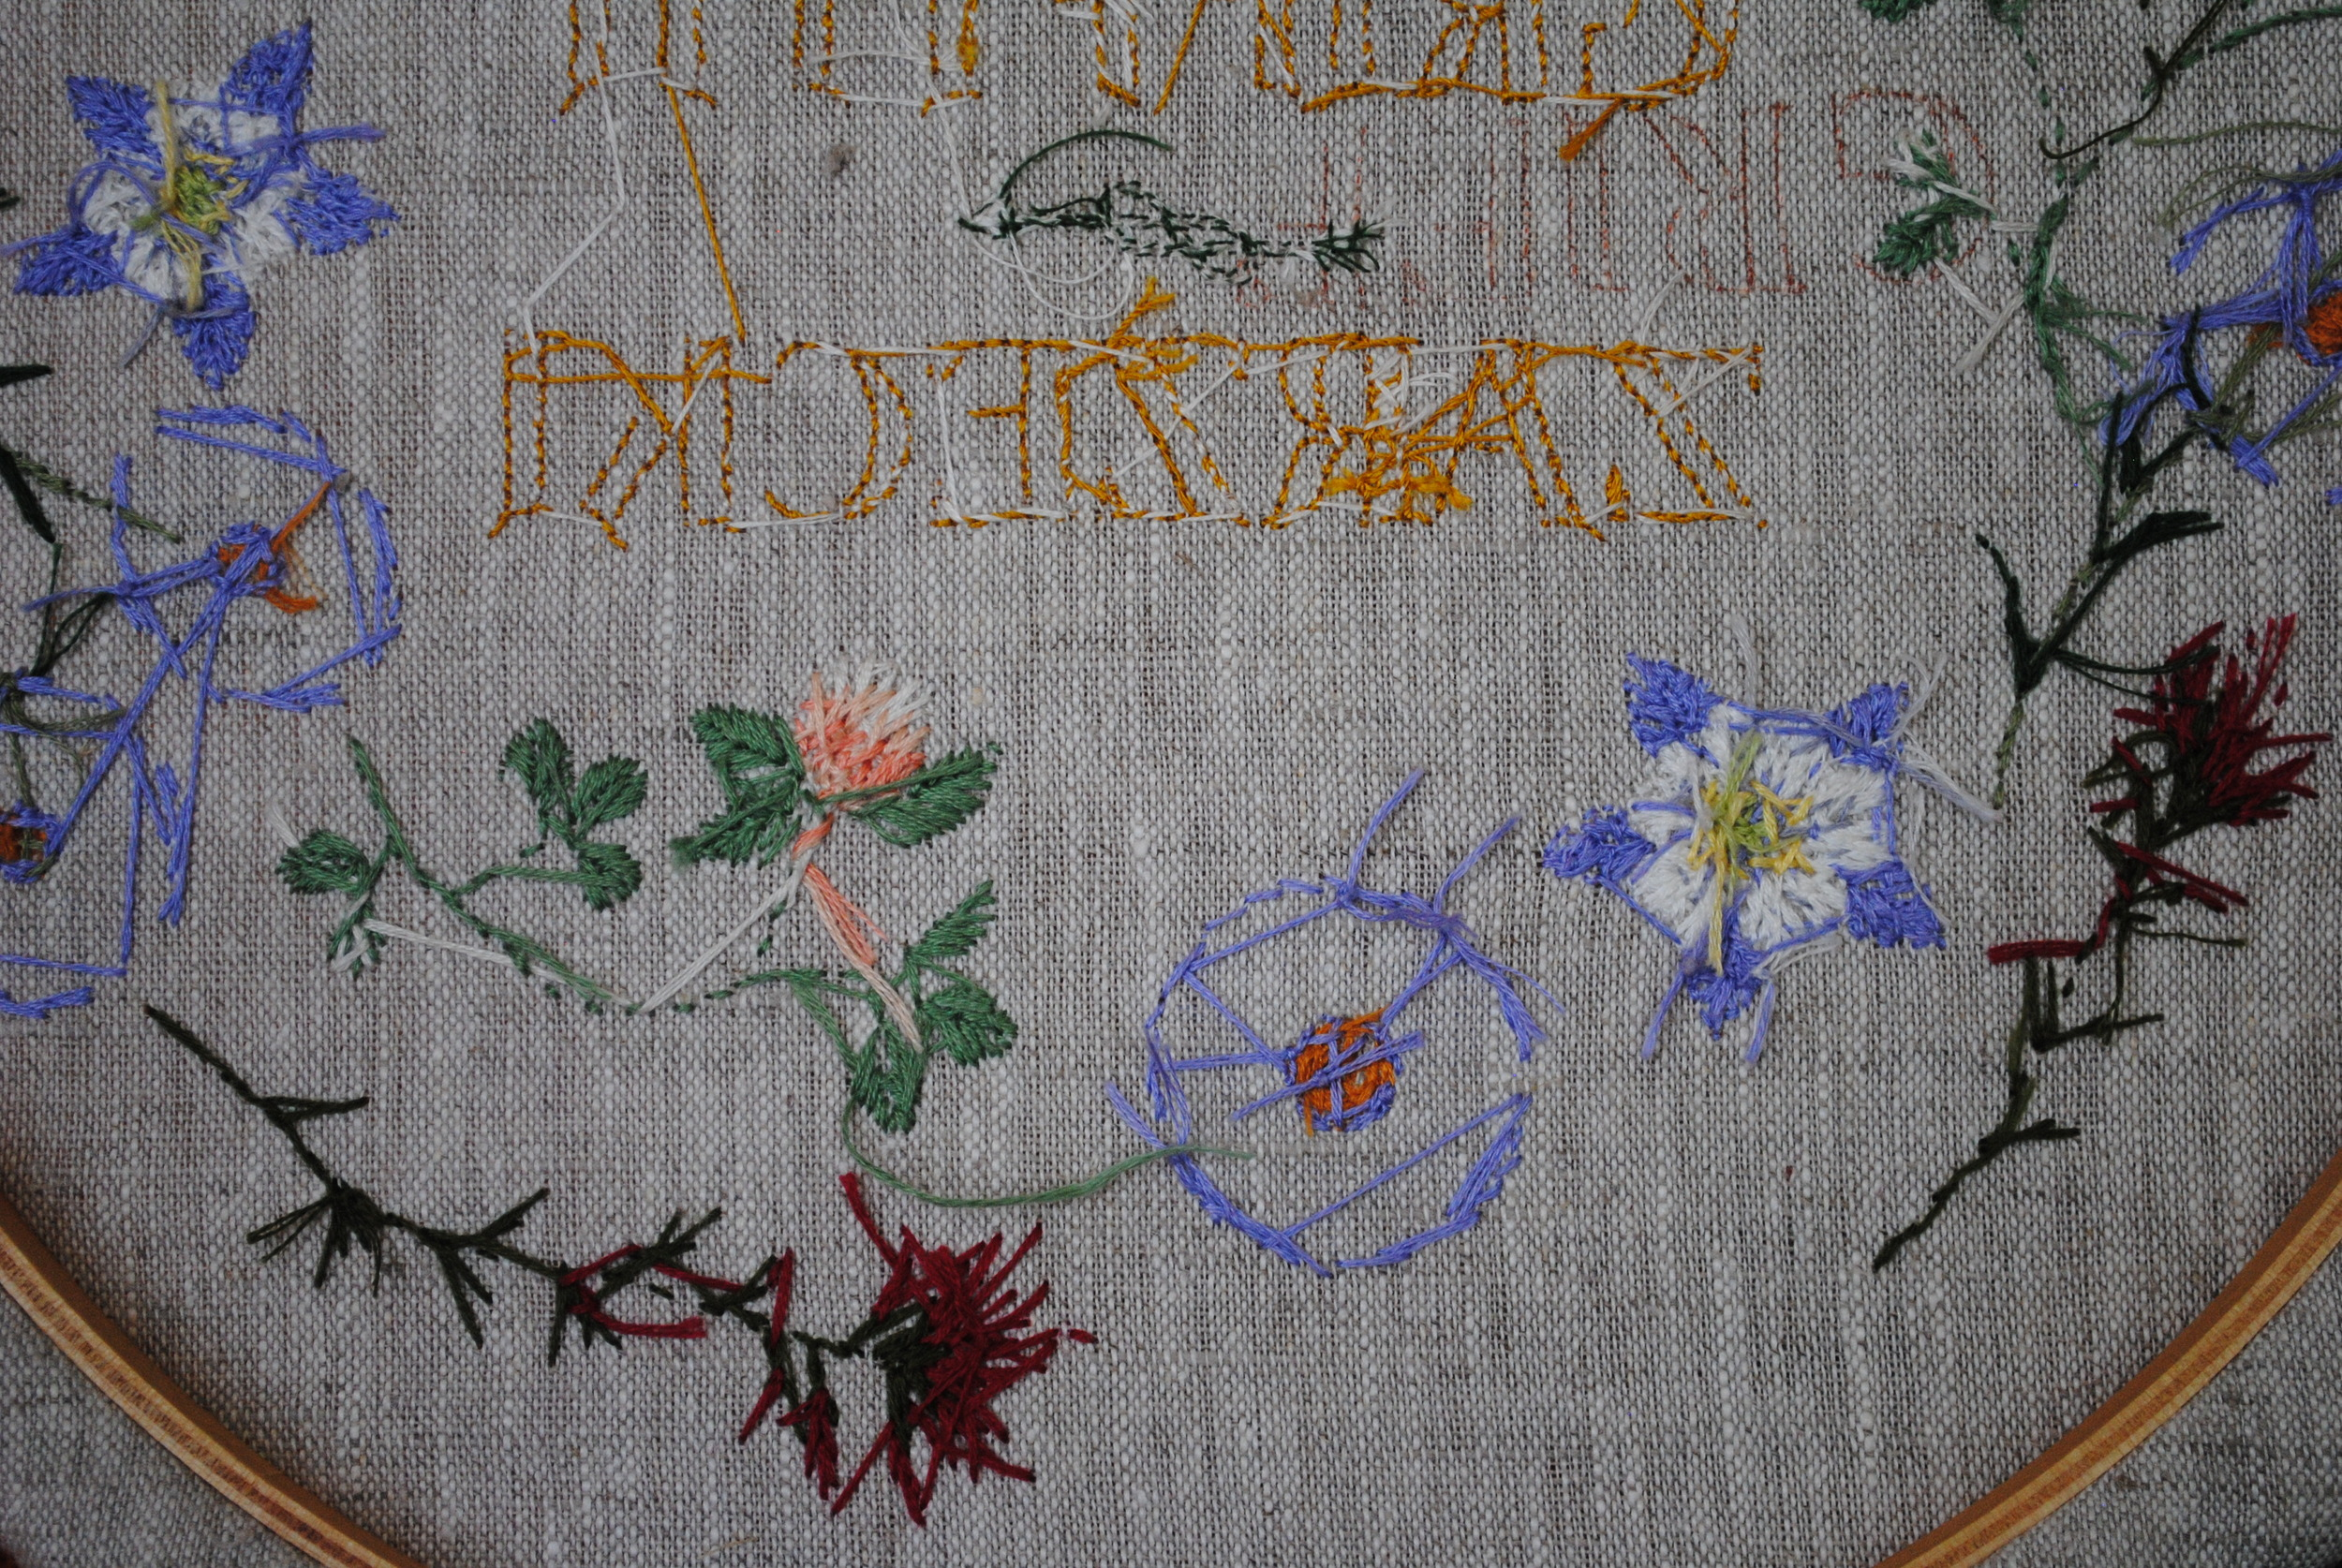 The back of the finished work.  I paid more attention to thread conservation as I went along.